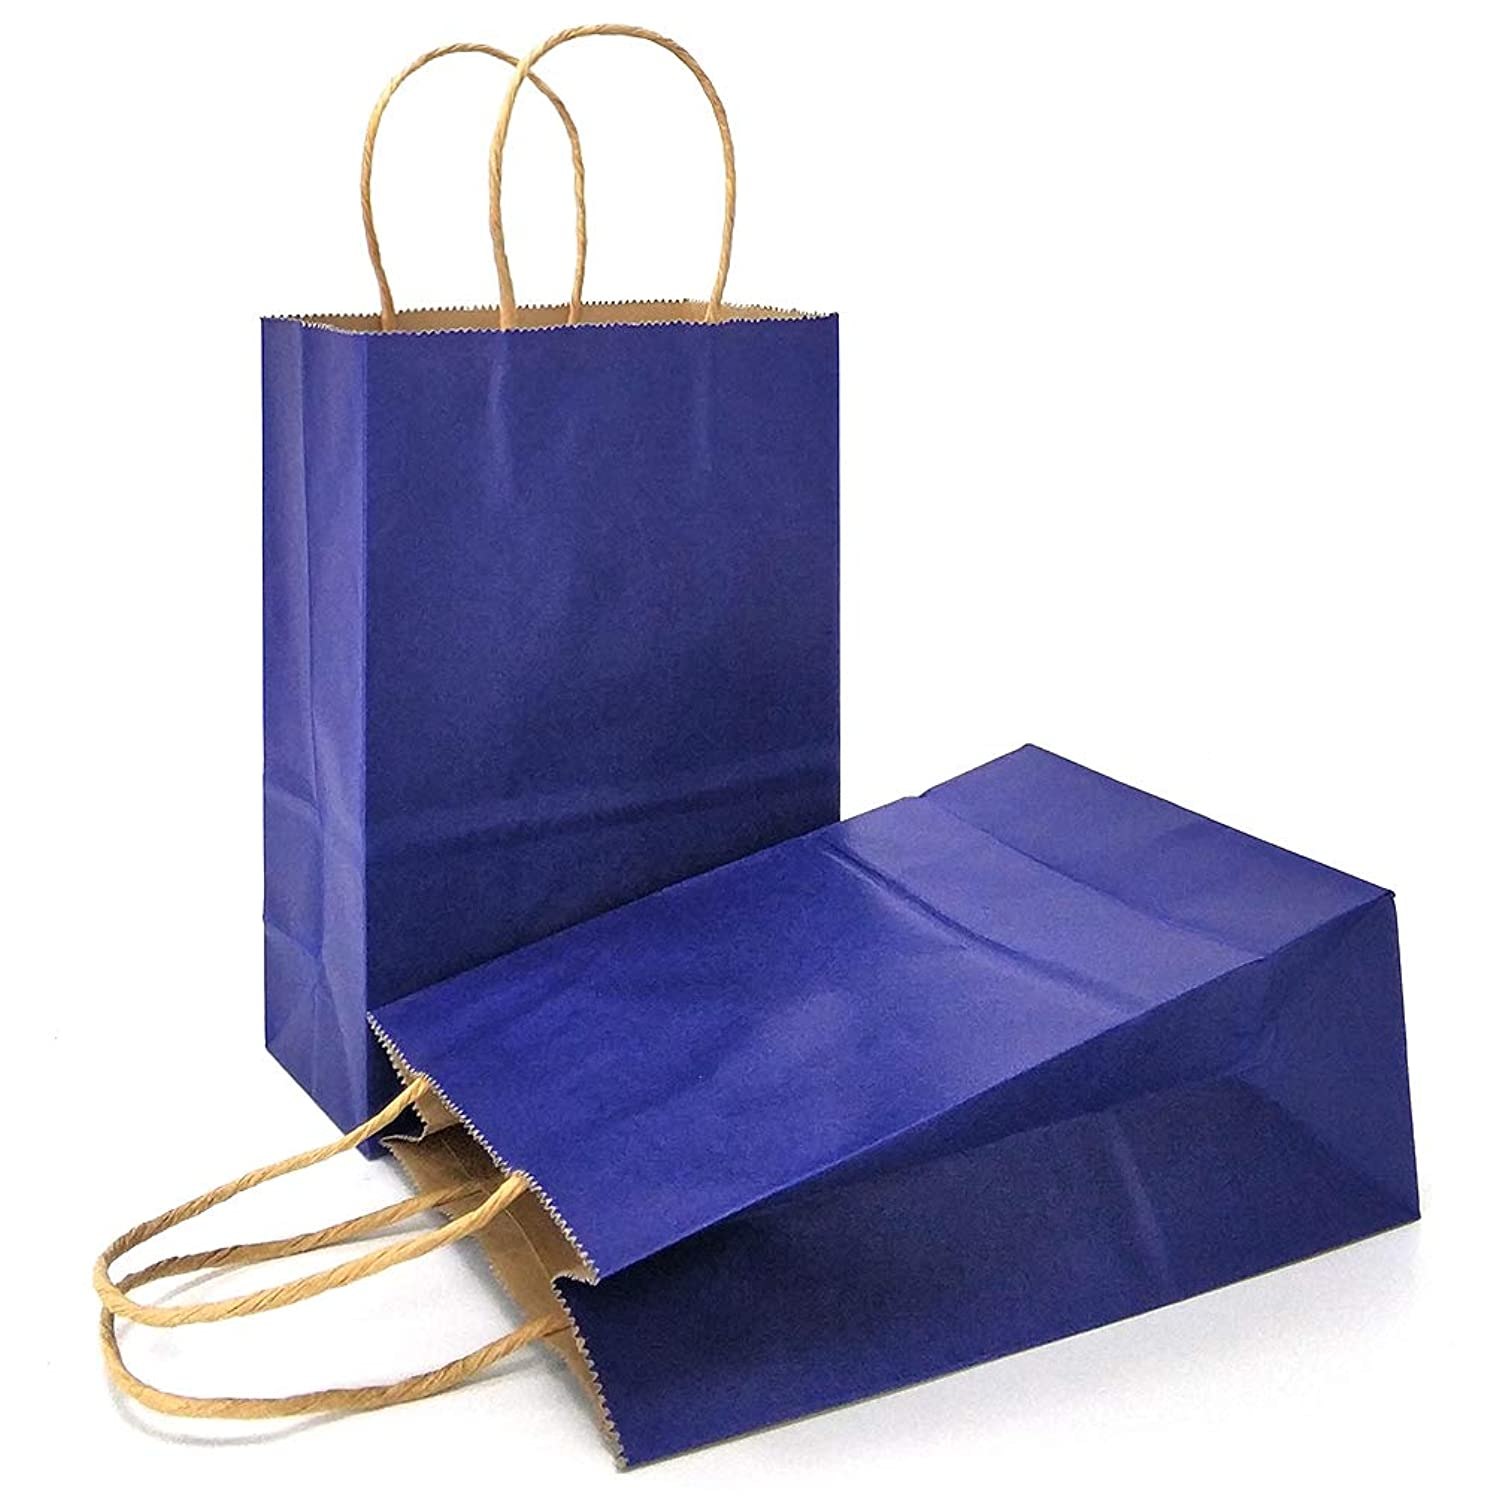 AZOWA Gift Bags Navy Blue Kraft Paper Bags with Handles Party Supplies Set of 25 qagobj9117228